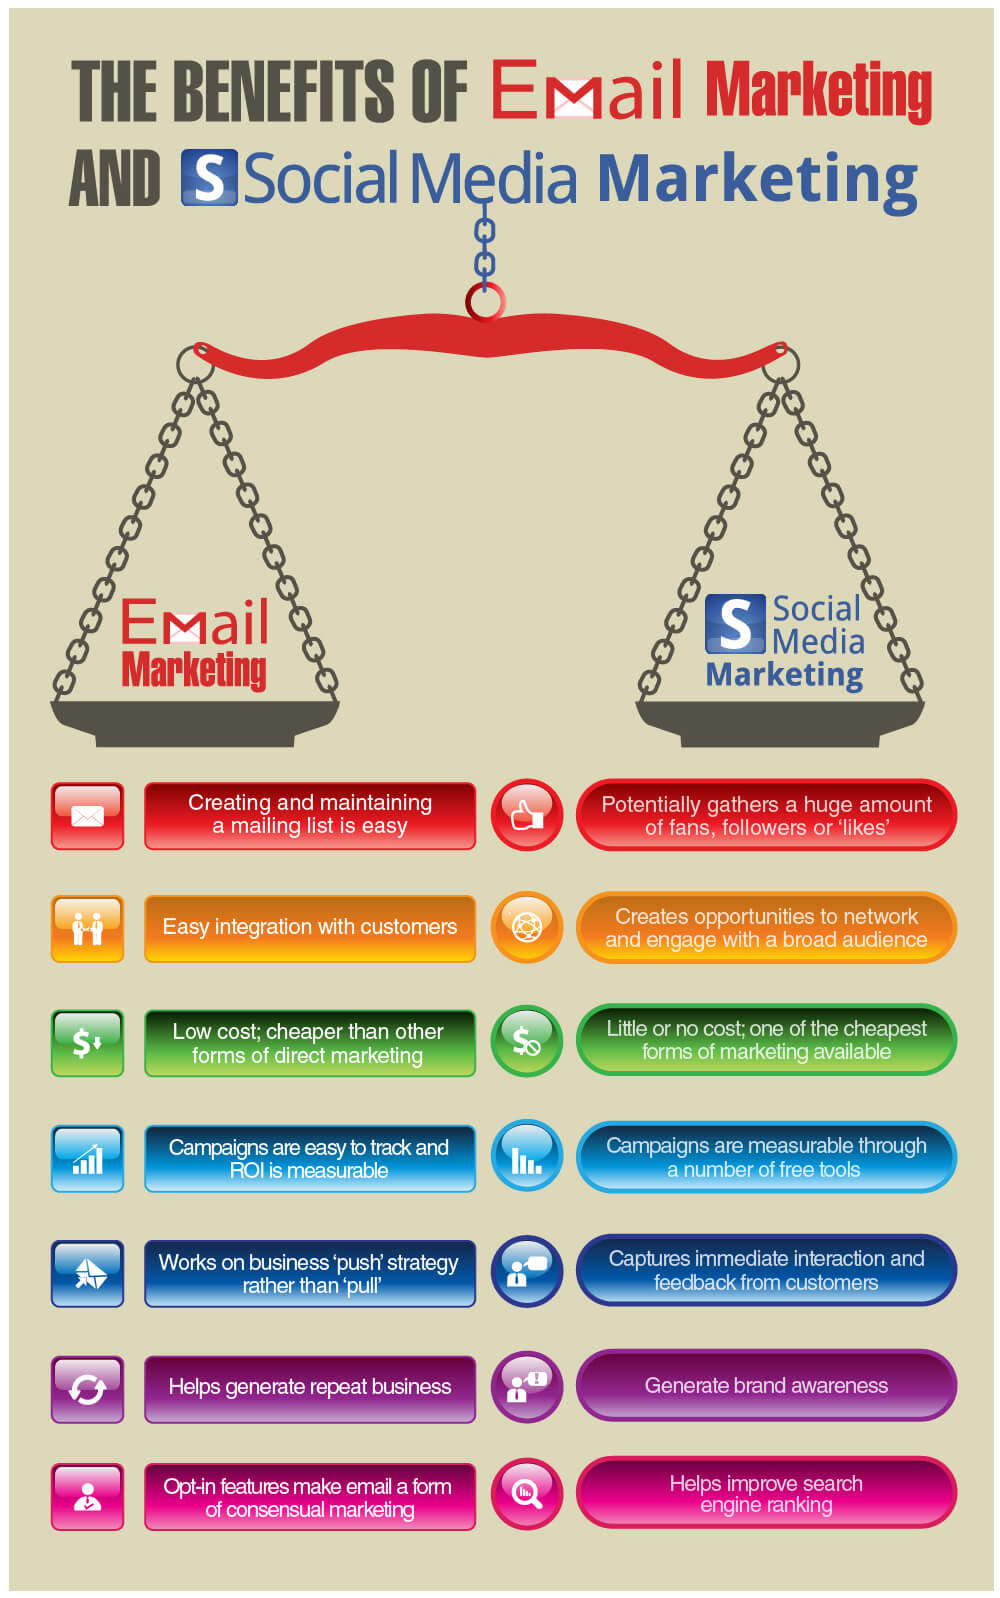 infografia_bebeficios_email_marketing_vs_socialmedia_marketing